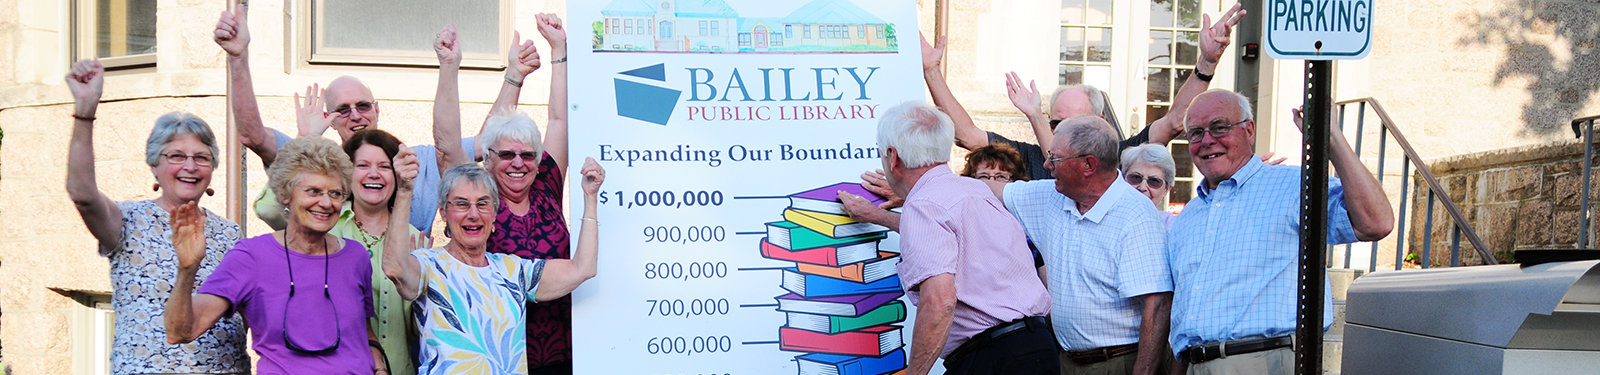 Bailey Public Library Yours To Explore